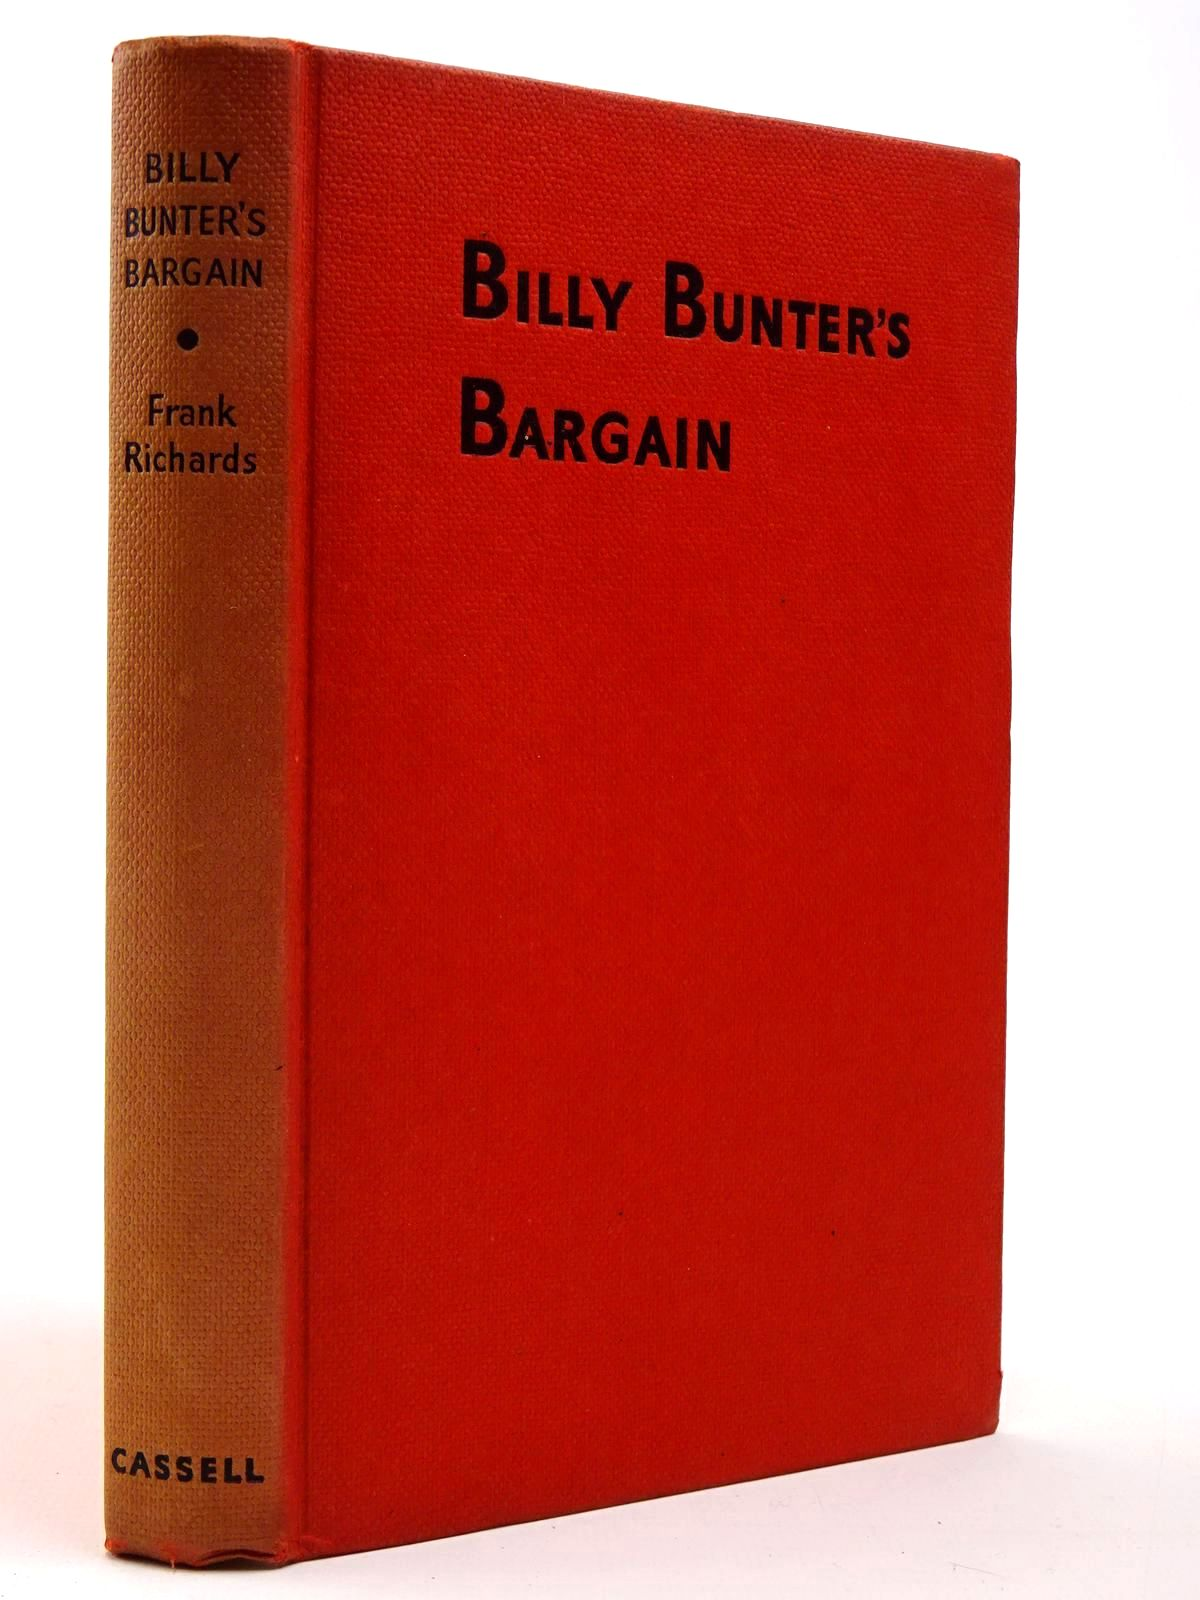 Photo of BILLY BUNTER'S BARGAIN written by Richards, Frank illustrated by Chapman, C.H. published by Cassell & Co. Ltd. (STOCK CODE: 2129663)  for sale by Stella & Rose's Books